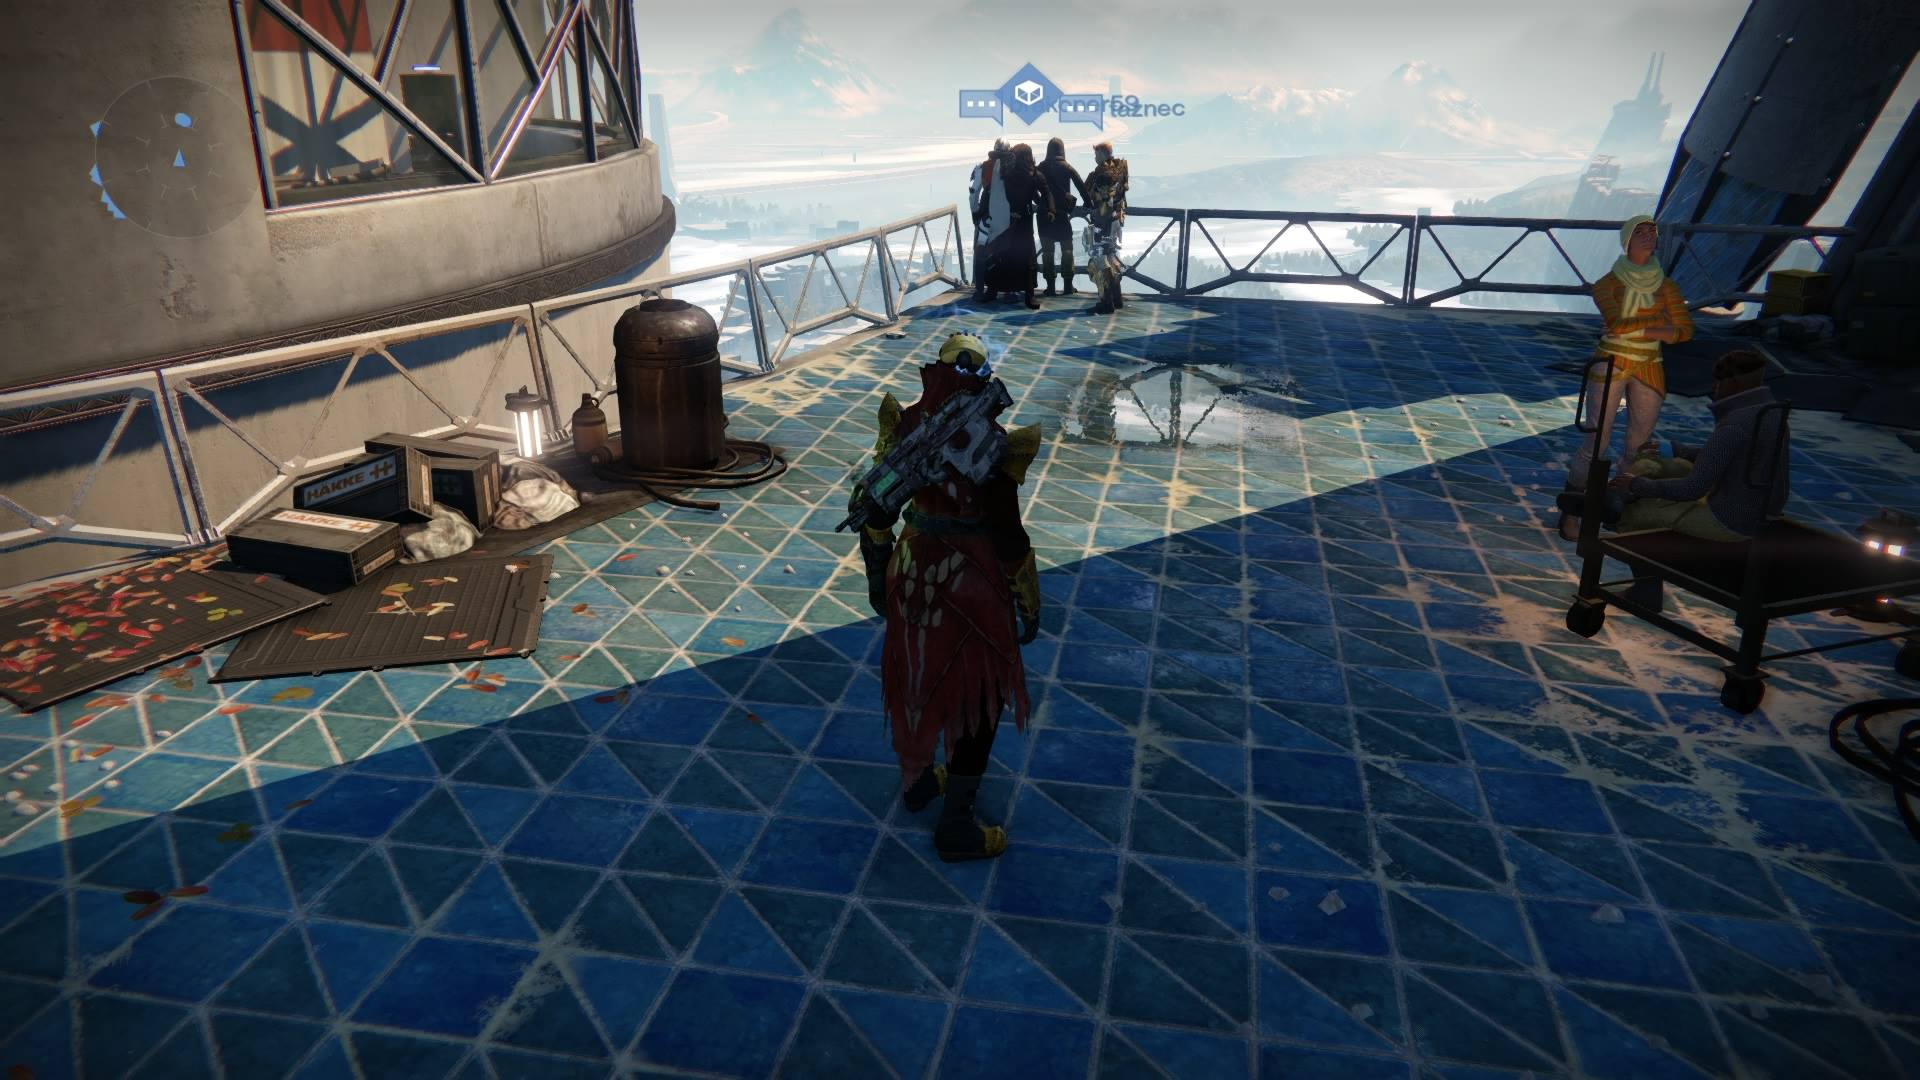 Destiny xur location and inventory for april 3 4 dragon s